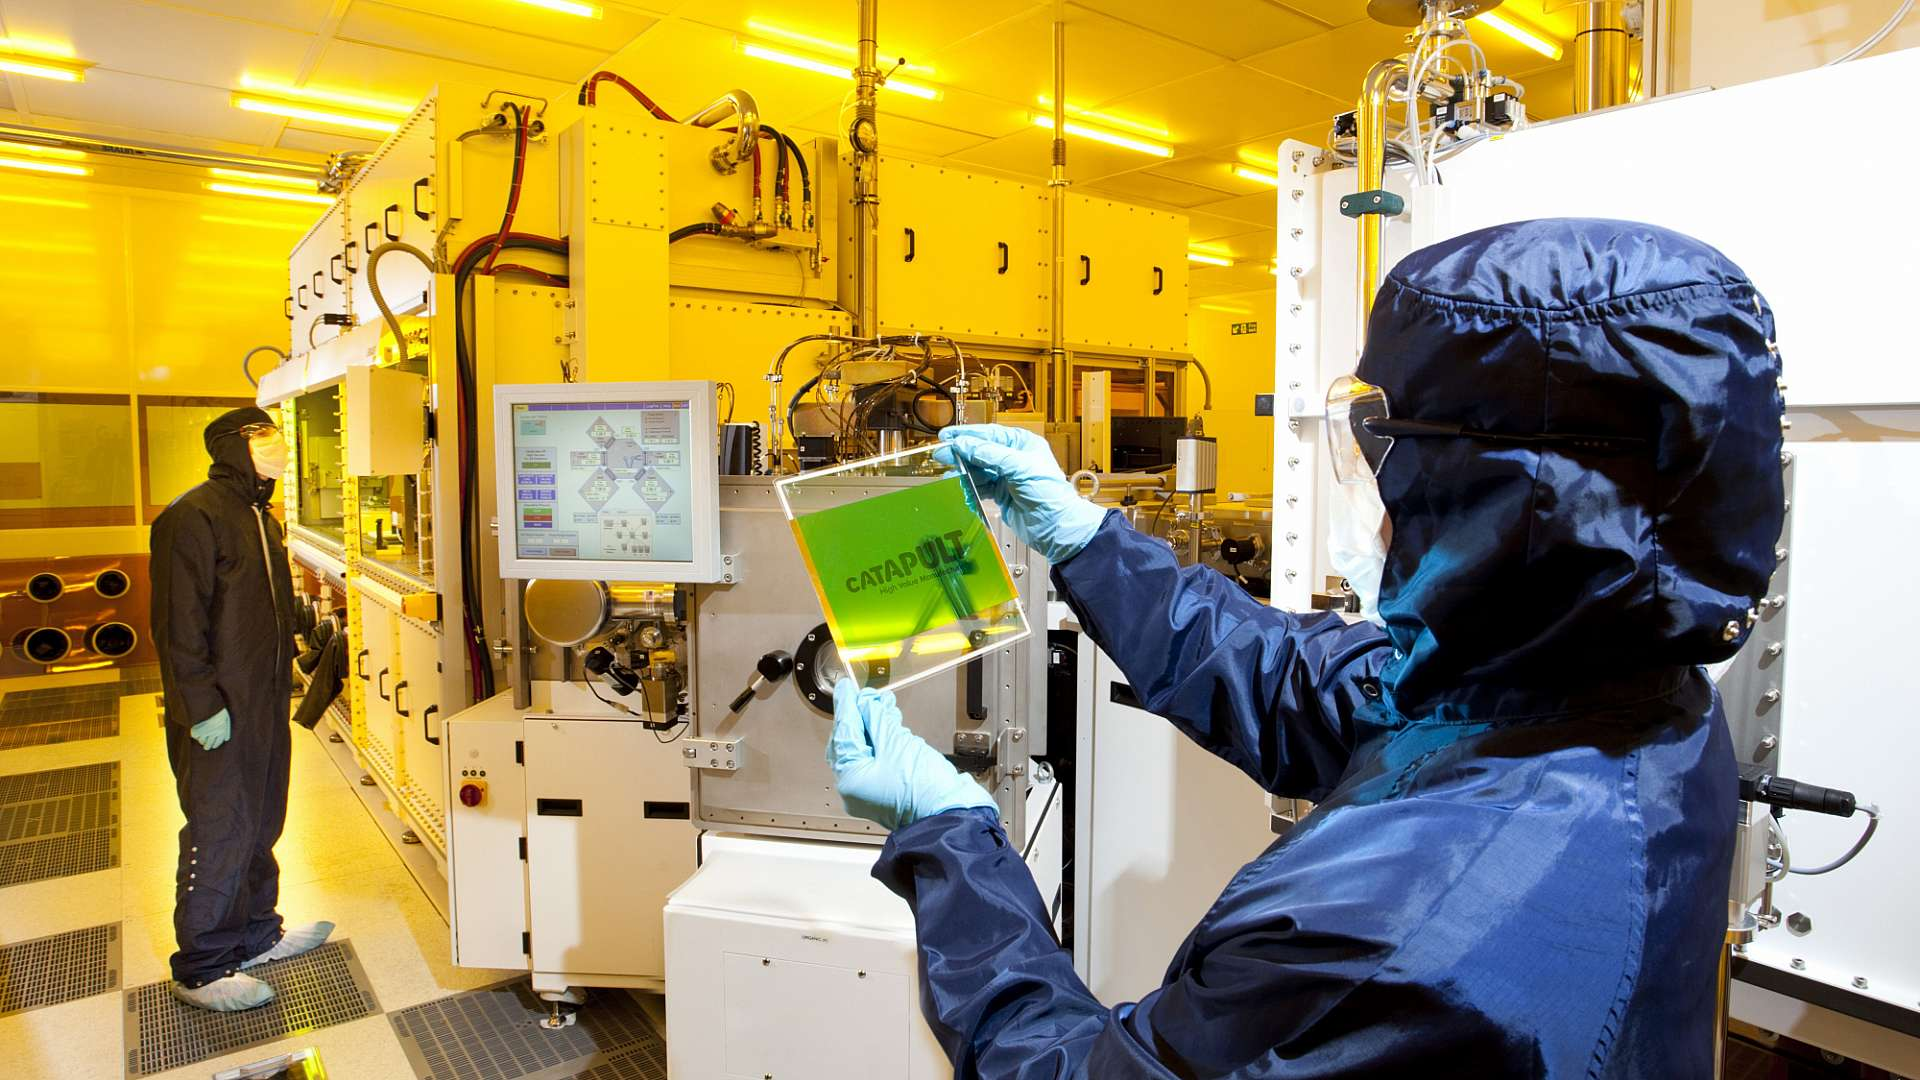 The £107m funding will be delivered as part of the High Value Manufacturing Catapult programme